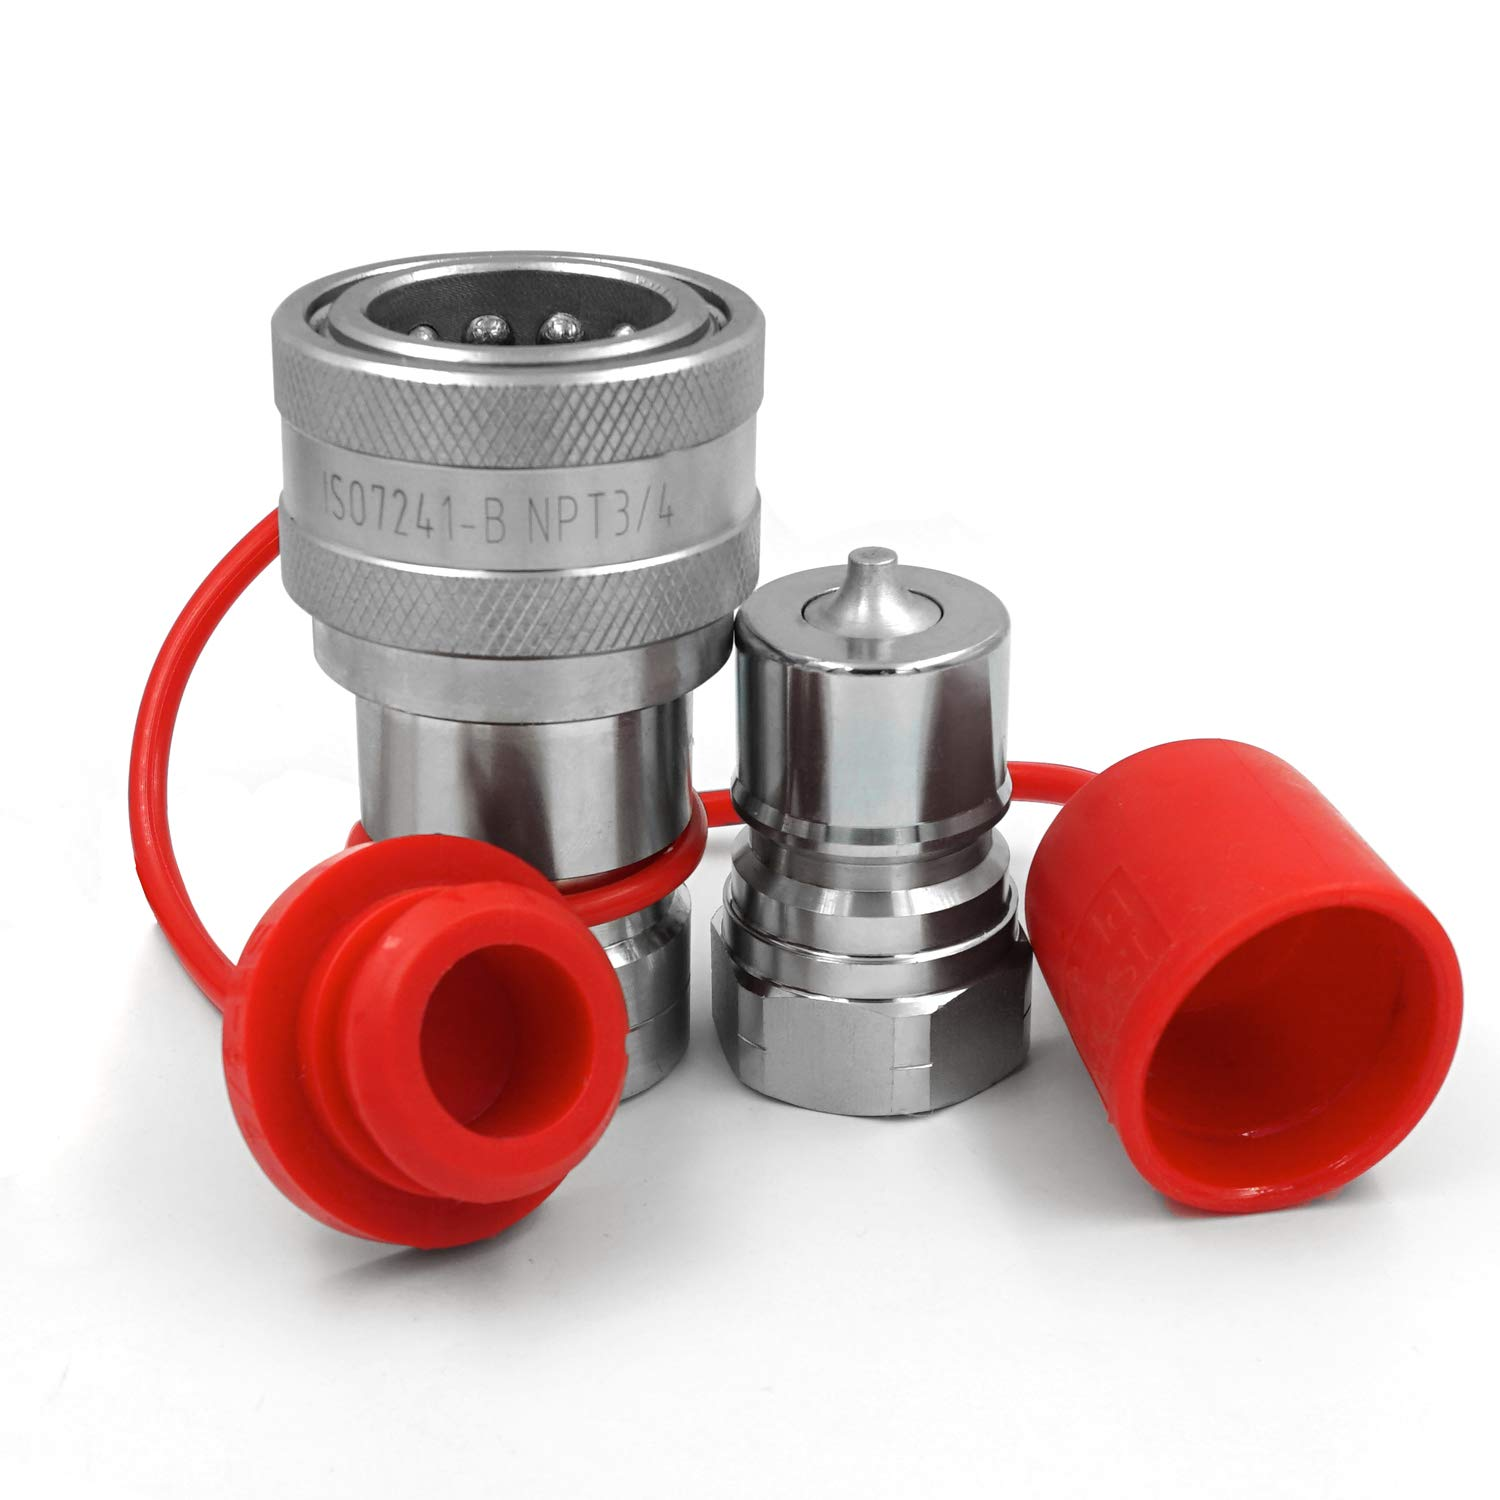 3/4'' NPT Thread ISO7241 B Hydraulic Quick Disconnect Coupler/Coupling Set